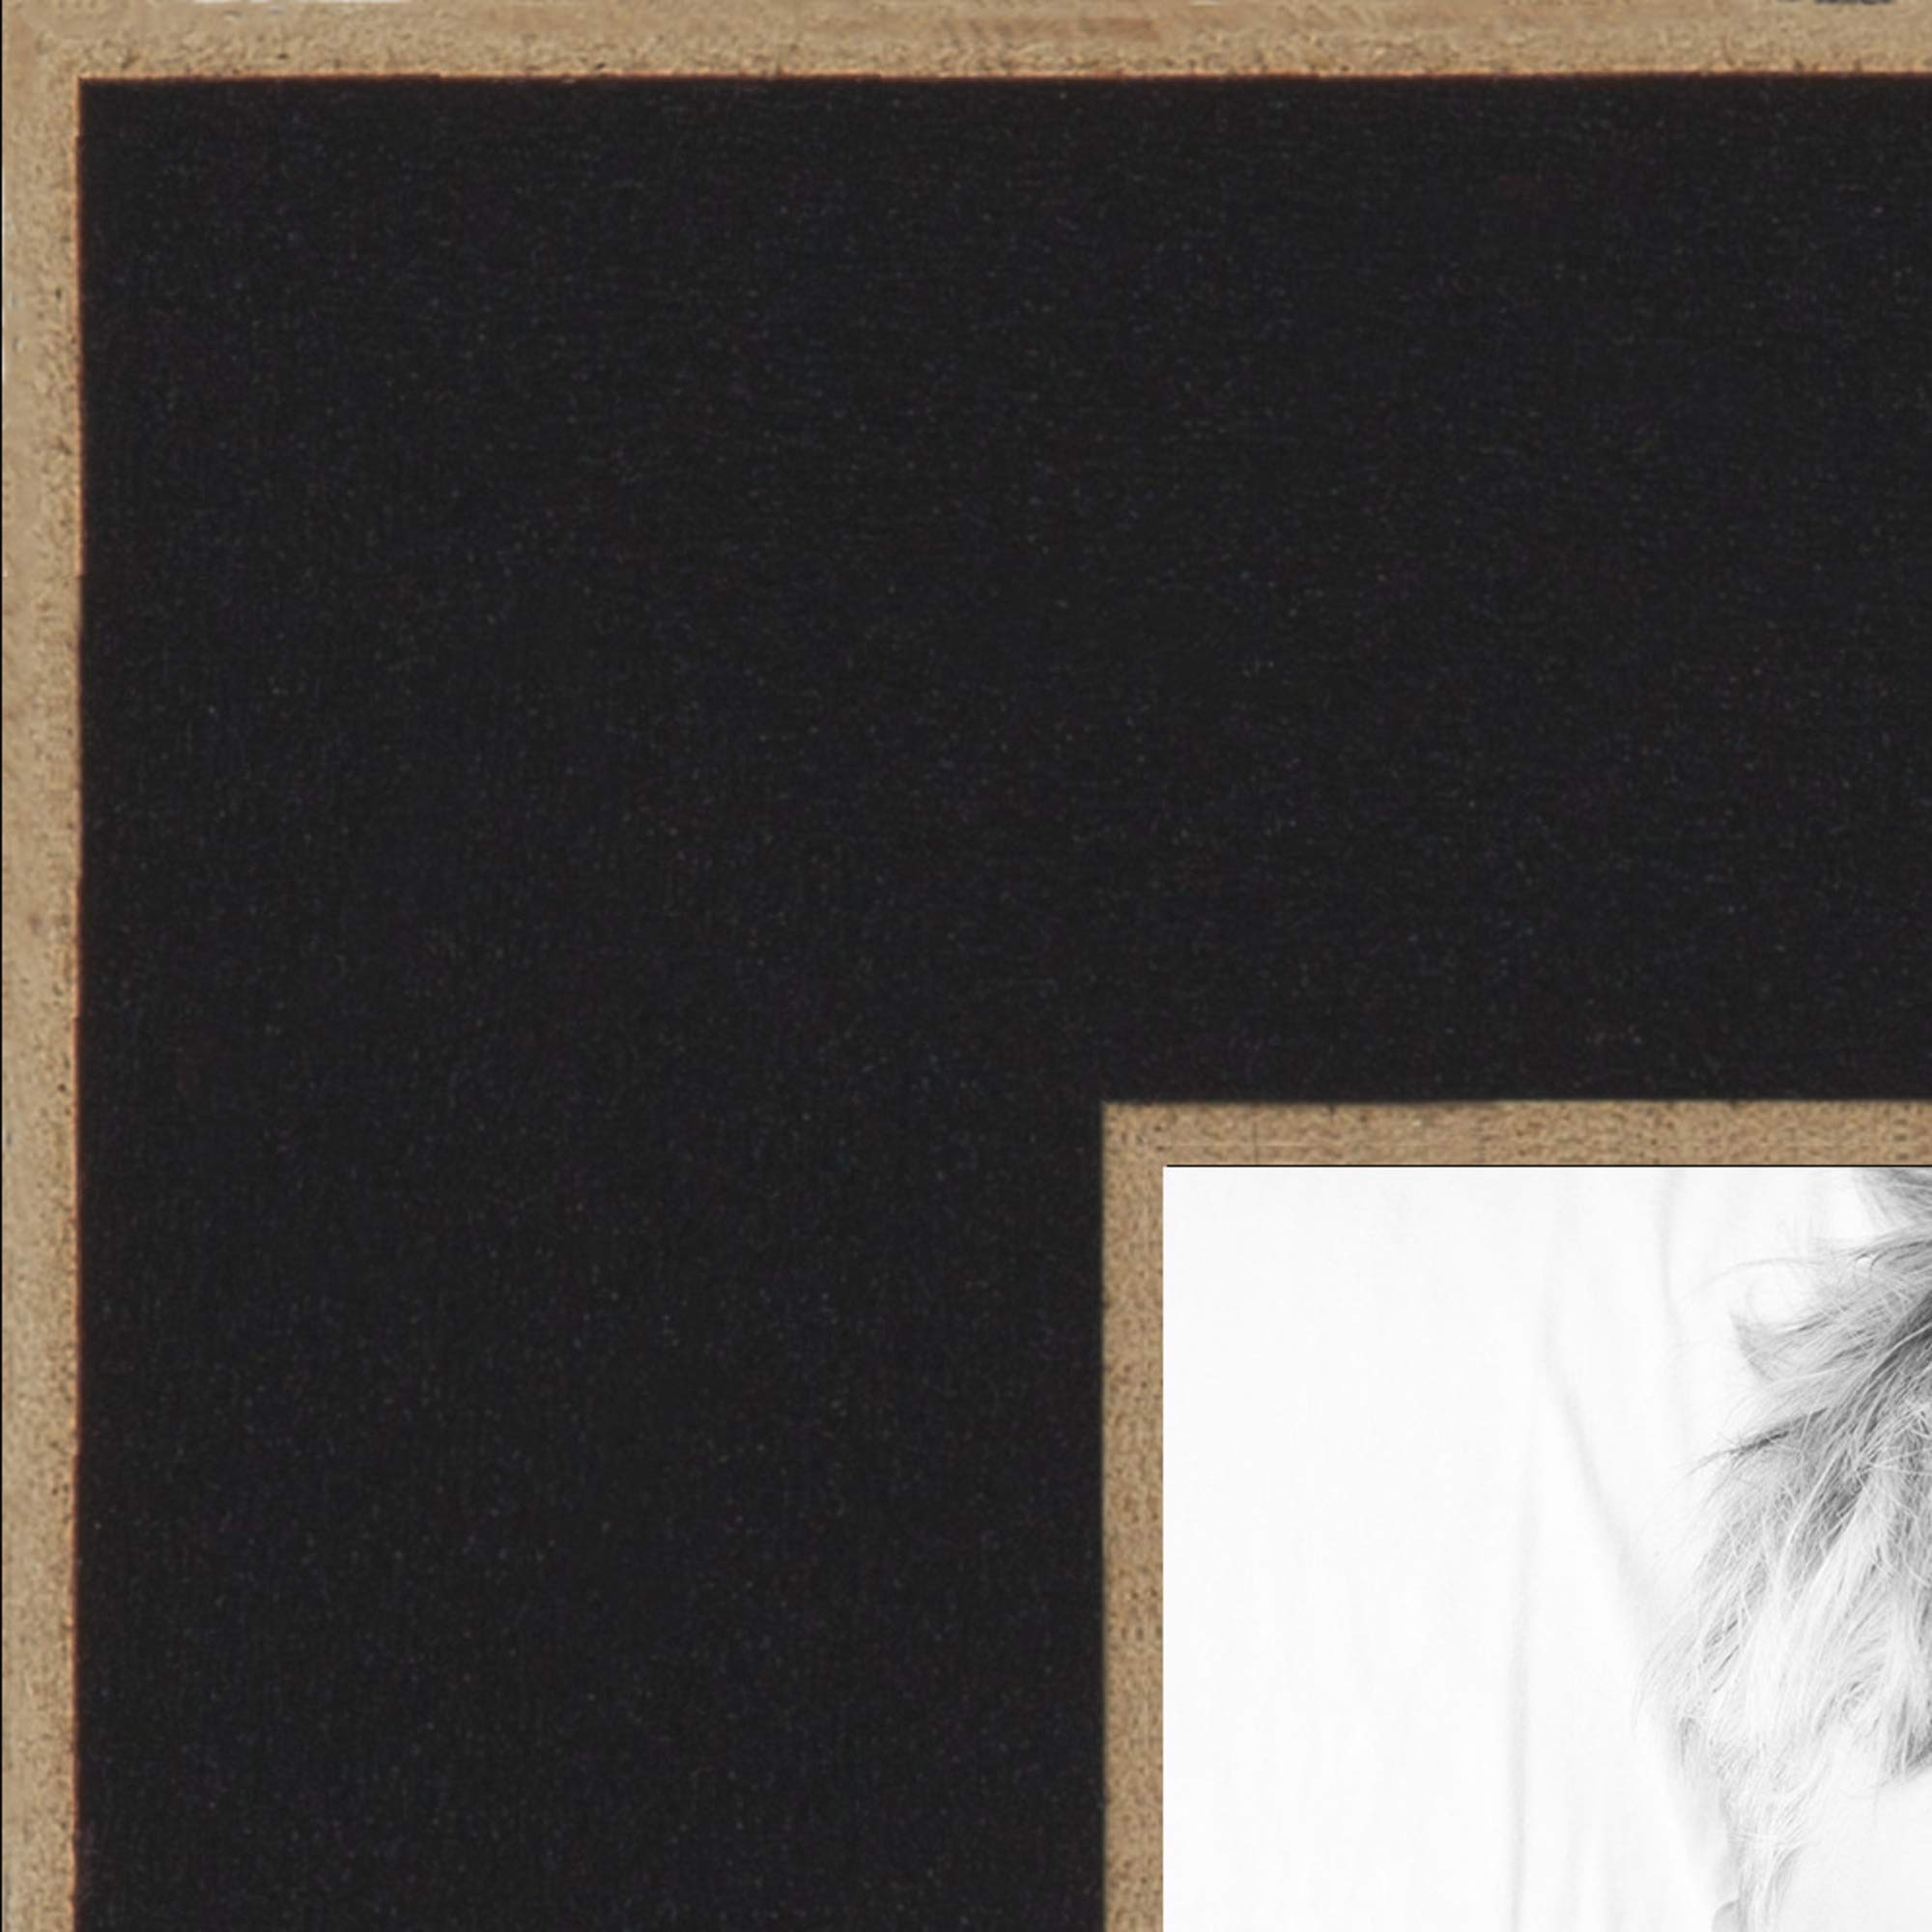 ArtToFrames 14x23 inch Black Satin with Raw Edges Picture Frame, 2WOM0066-76808-890R-14x23